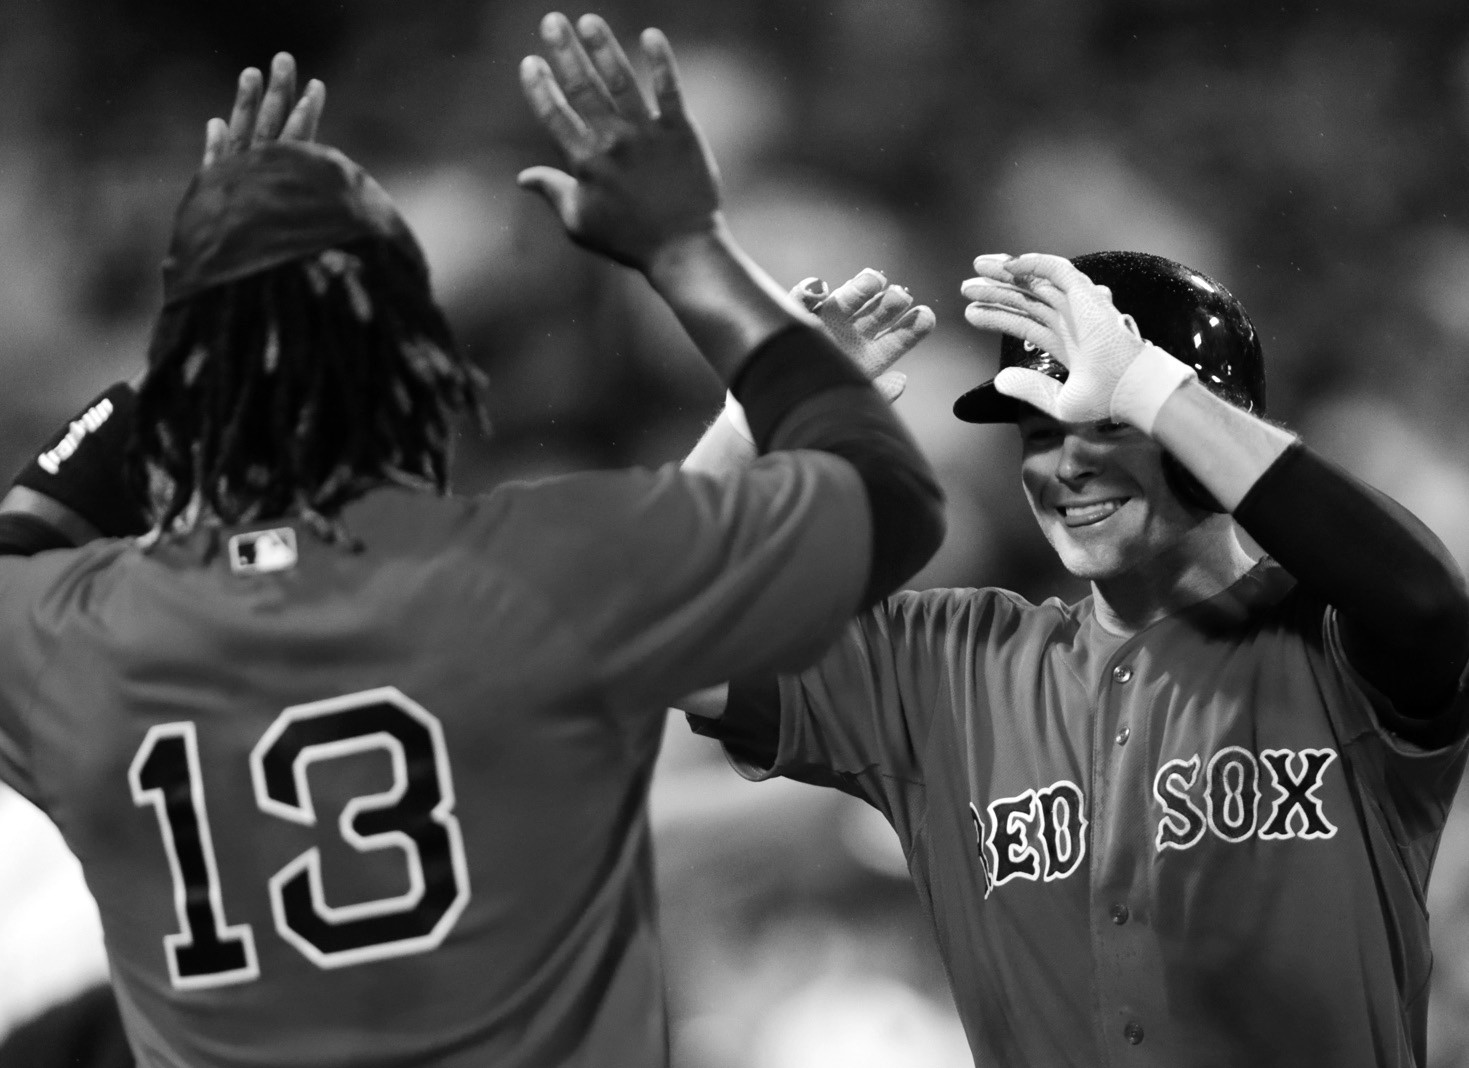 Boston Red Sox's Josh Rutledge, right, is congratulated by Hanley Ramirez after his two-run home run against the Kansas City Royals during the sixth inning at Fenway Park on Friday.